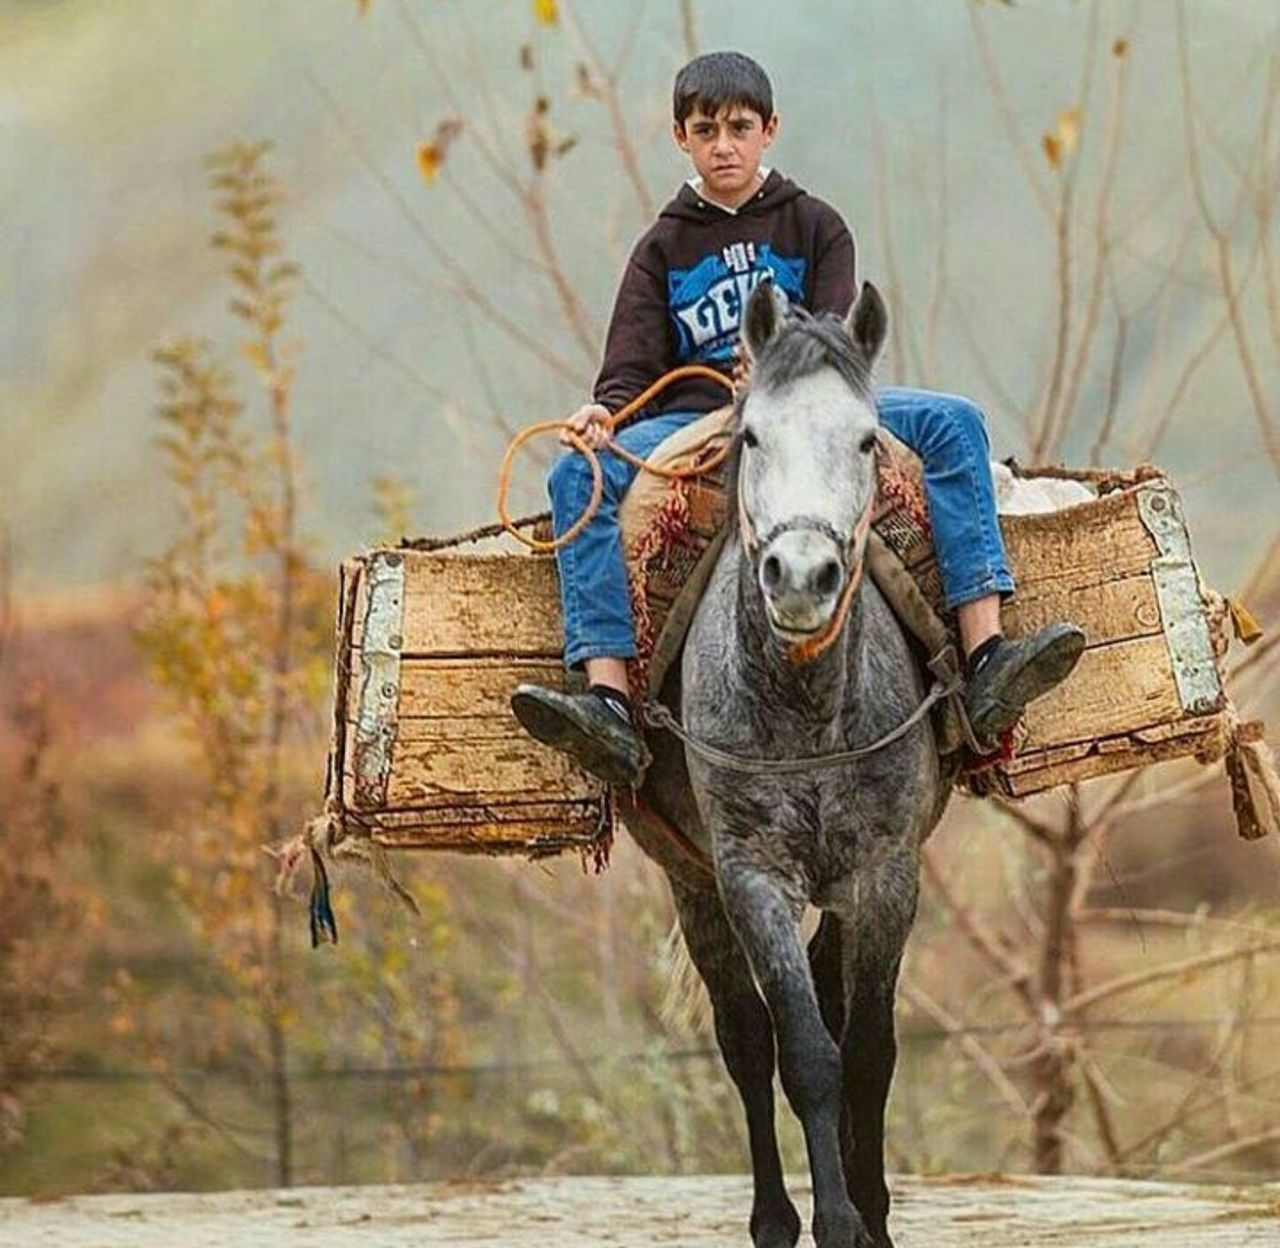 child, rural scene, agriculture, males, animal, people, one animal, riding, boys, outdoors, autumn, one person, farmer, full length, adult, day, grass, children only, portrait, nature, animal themes